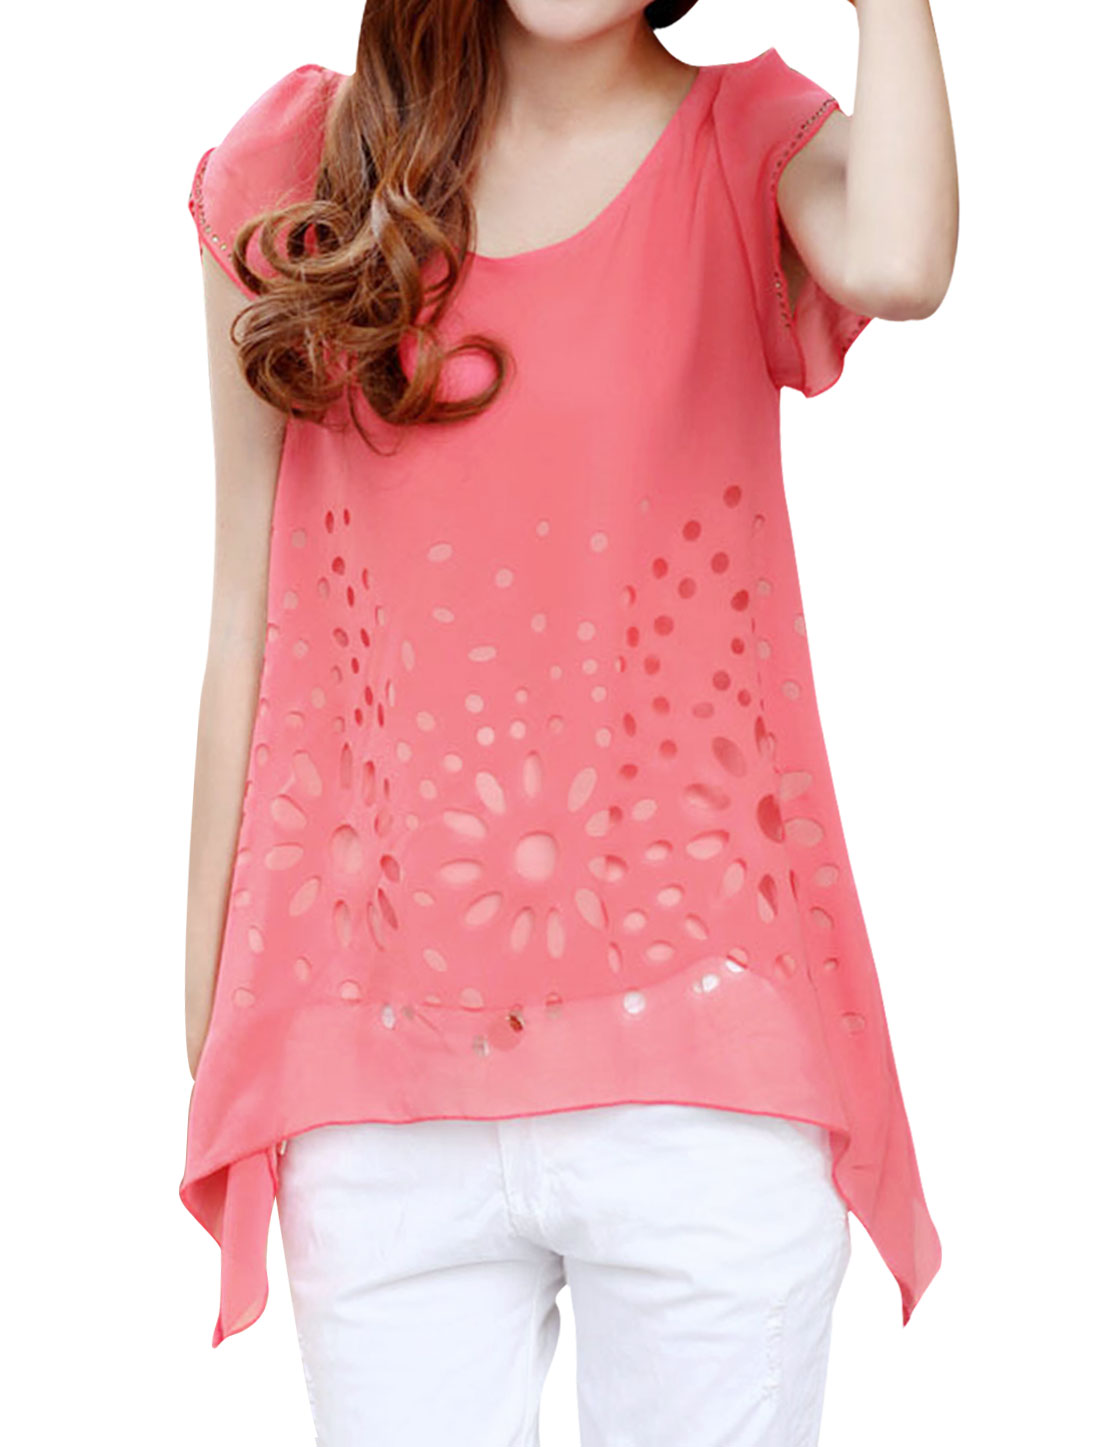 Ladies Round Neck Pullover Cap Sleeve Semi Sheer Top Shirt Watermelon Red S